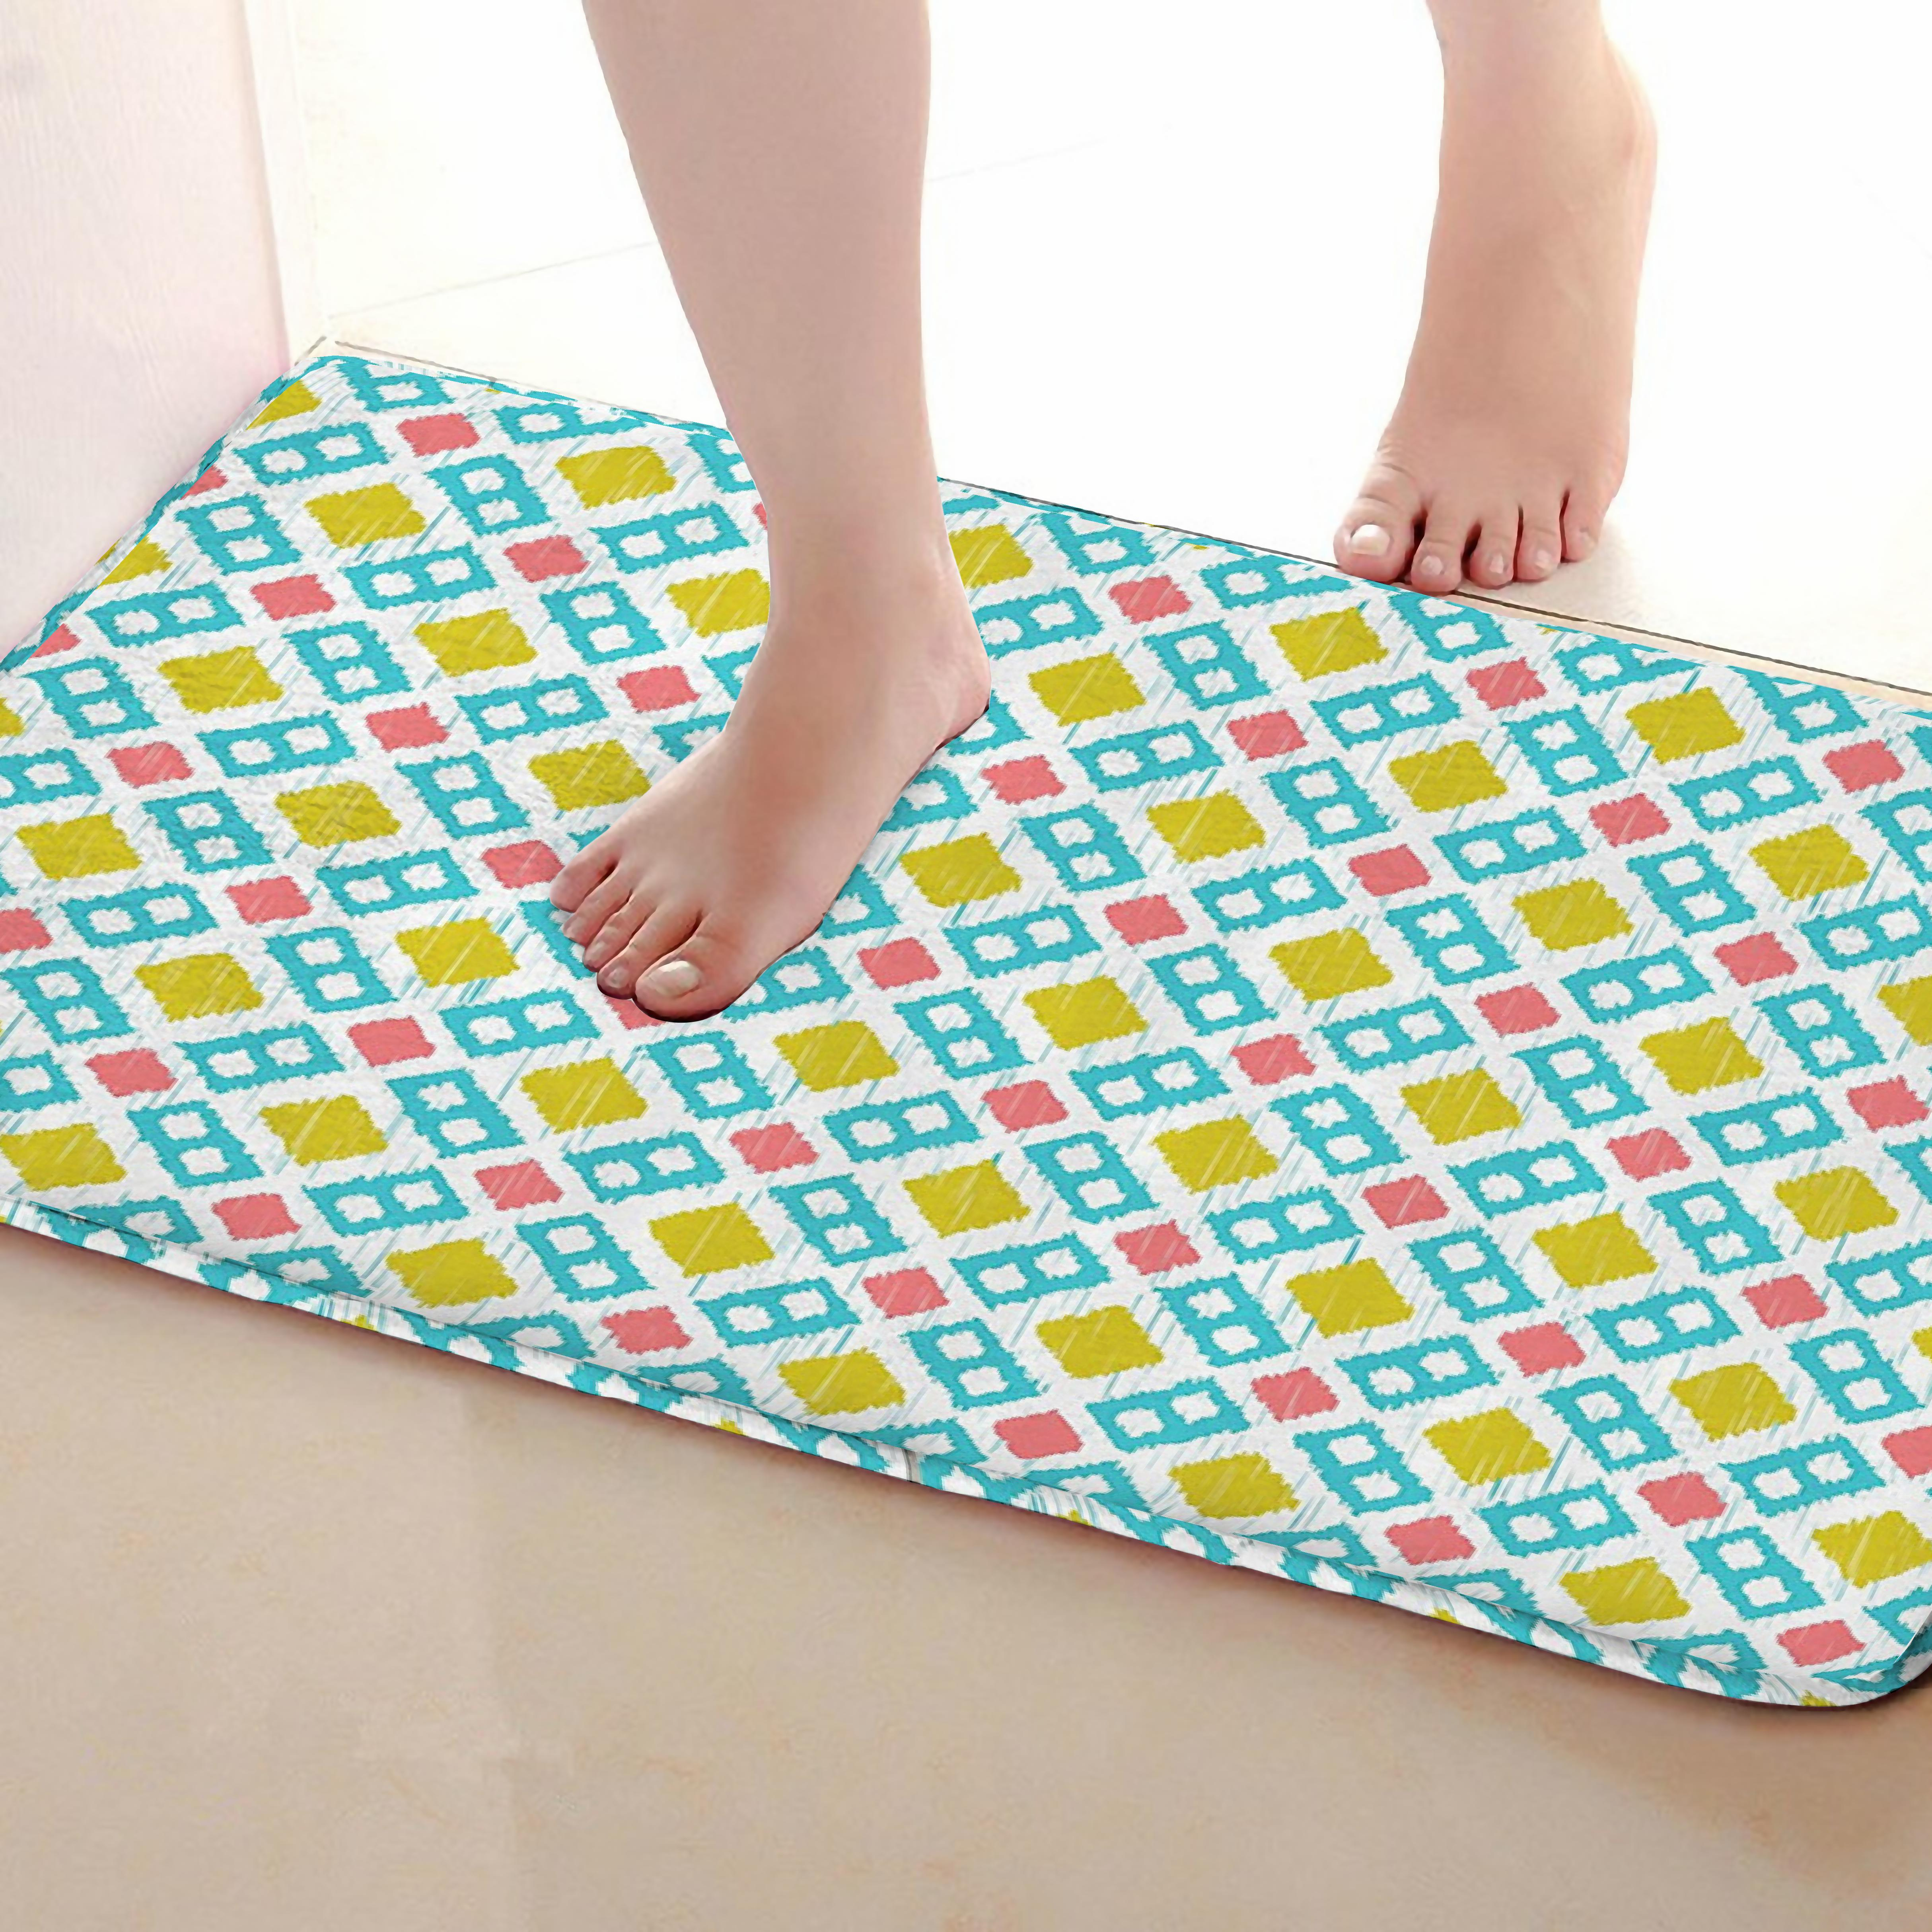 Square Style Bathroom Mat,Funny Anti skid Bath Mat,Shower Curtains Accessories,Matching Your Shower Curtain